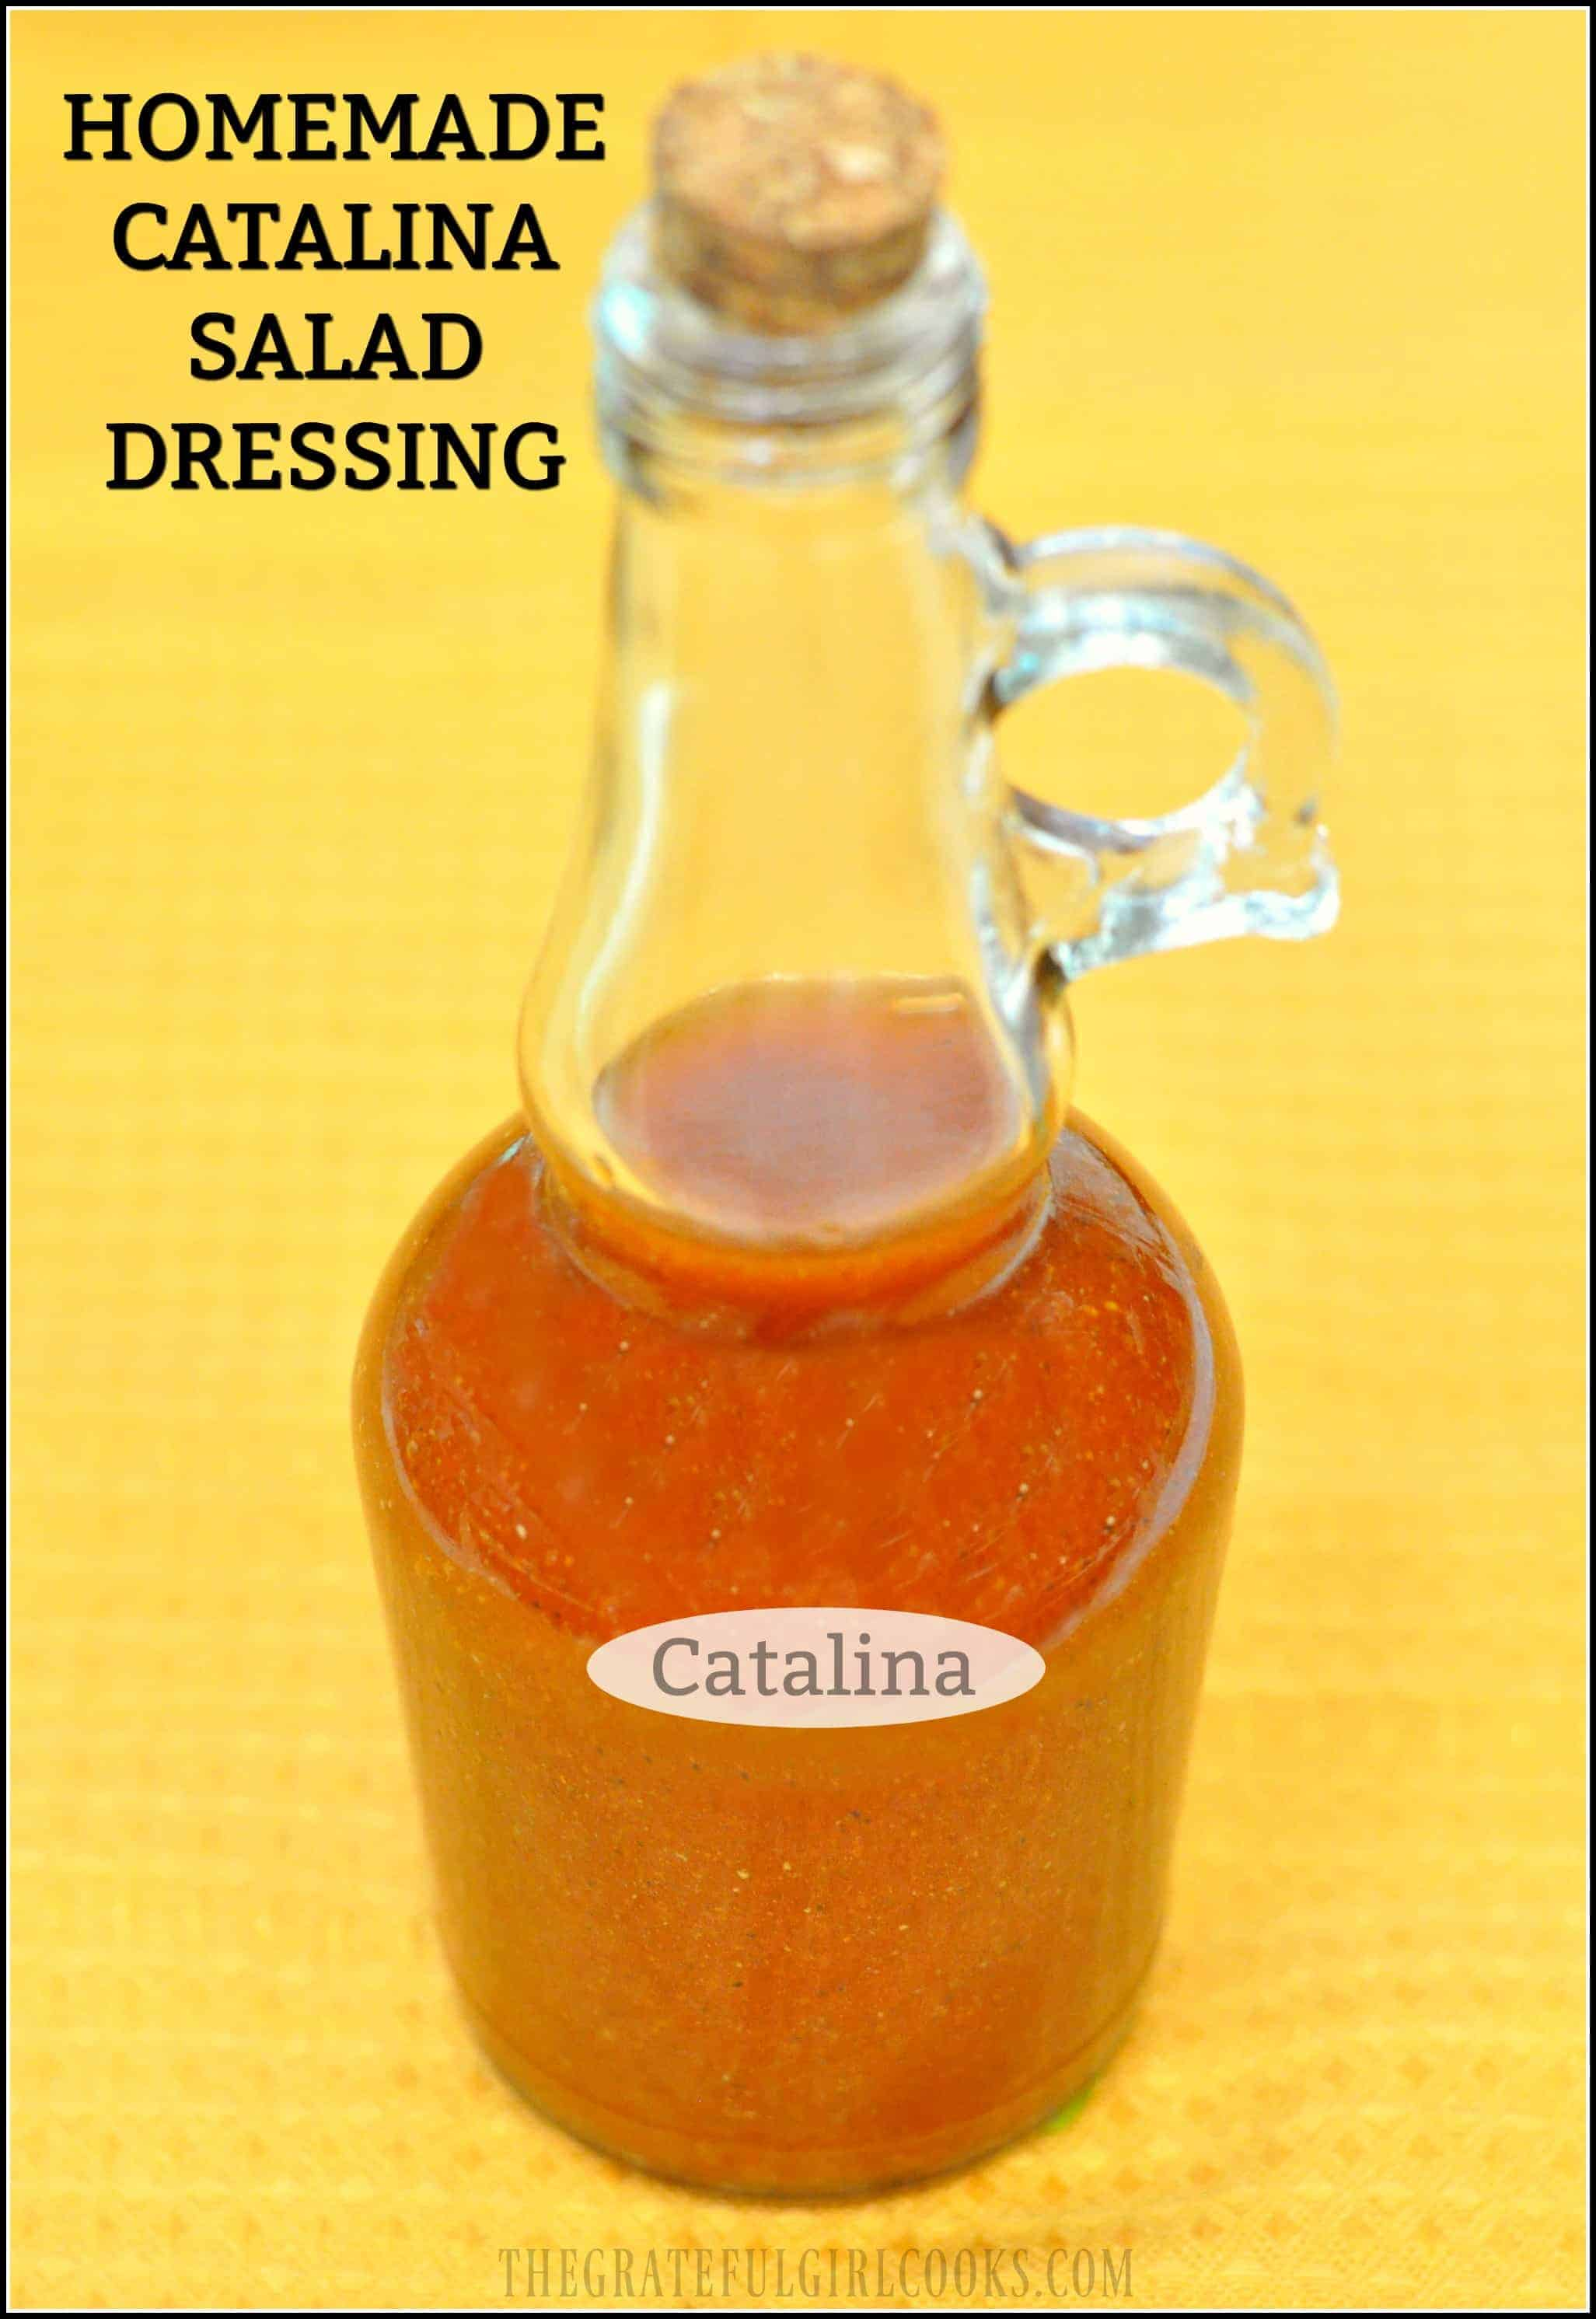 Homemade Catalina Salad Dressing / The Grateful Girl Cooks! This delicious salad dressing is made in a couple minutes with a few pantry ingredients!